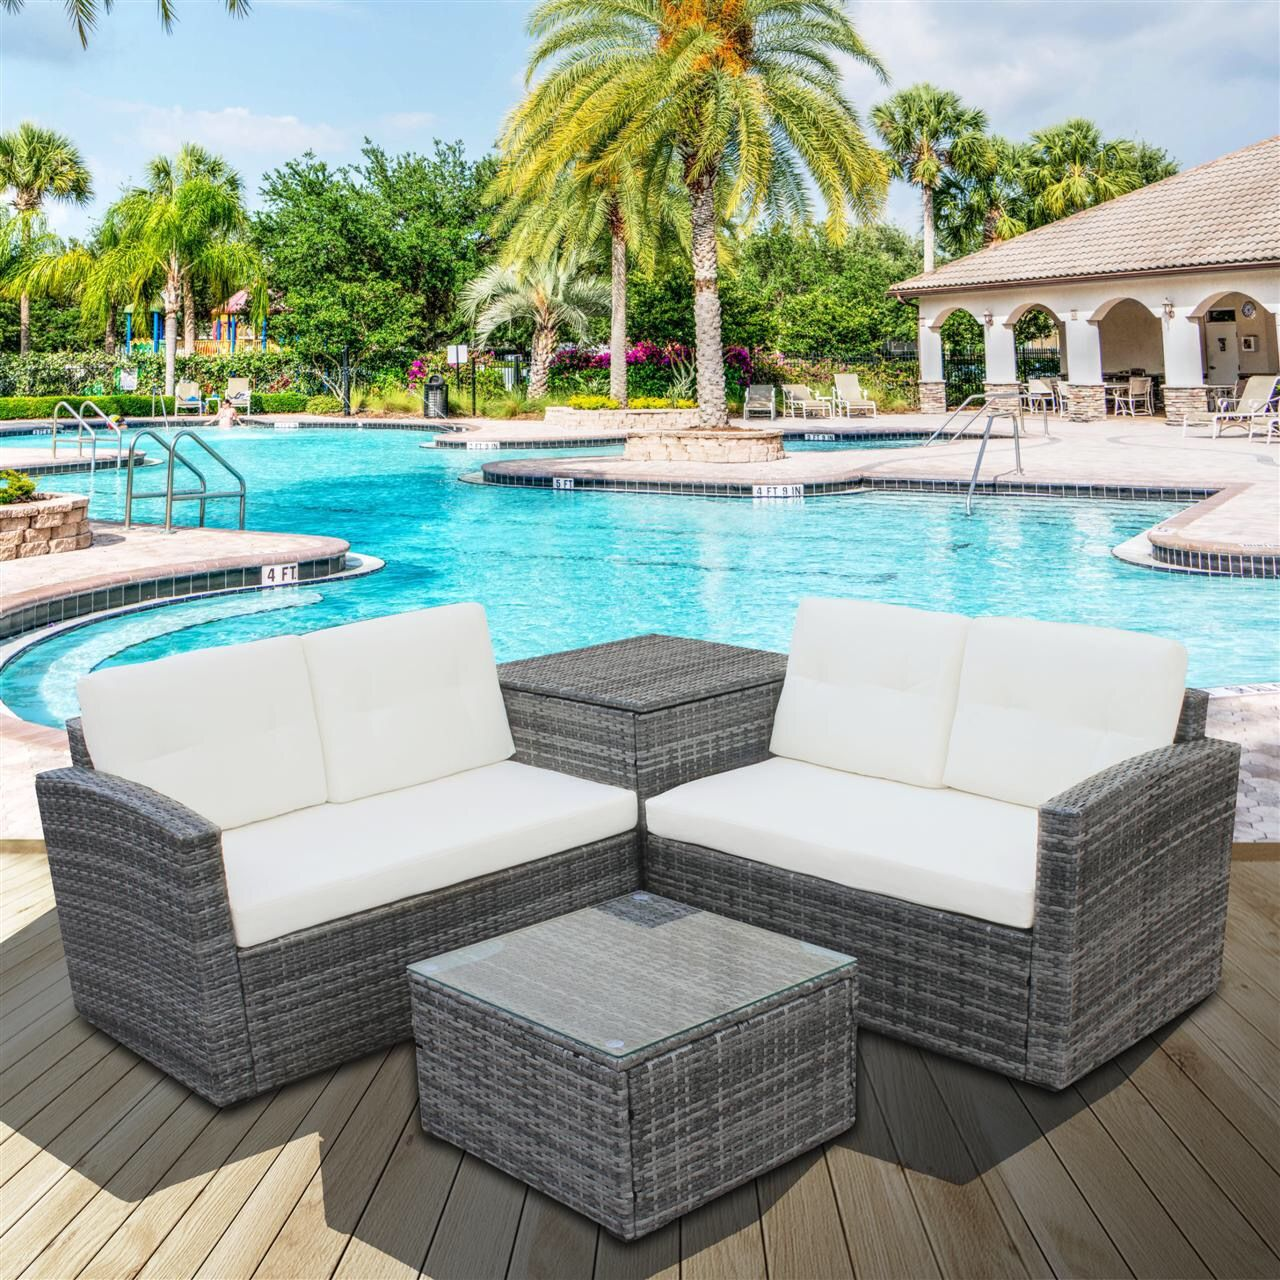 Free 2 Day Shipping Buy Clearance 4 Piece Outdoor Patio